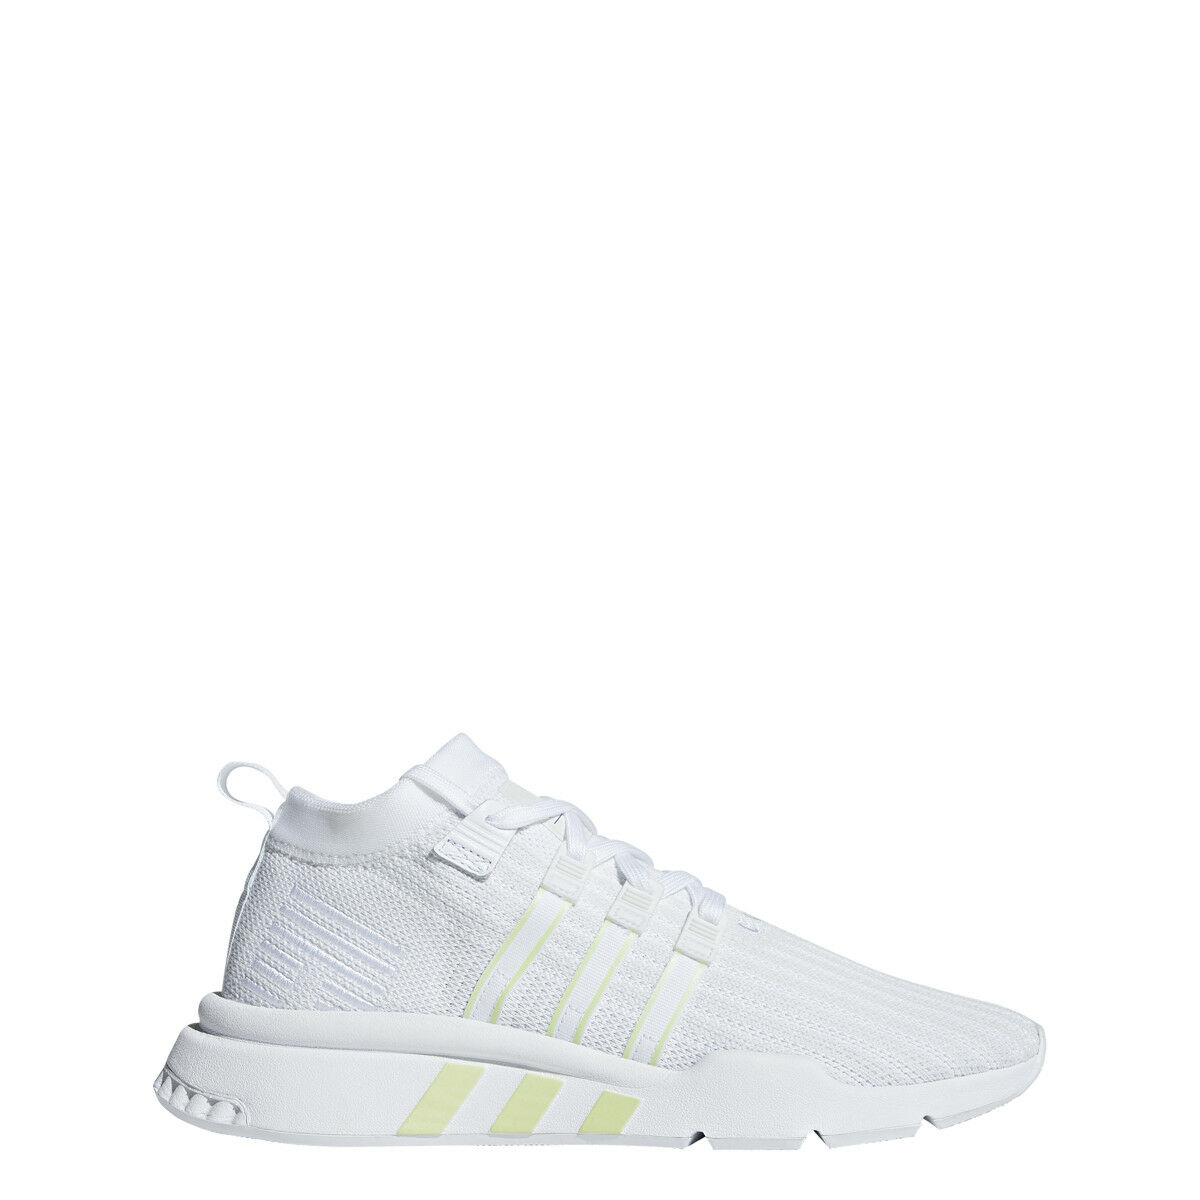 Adidas Mens EQT SUPPORT MID ADV PK White White Energy Ink - B37455